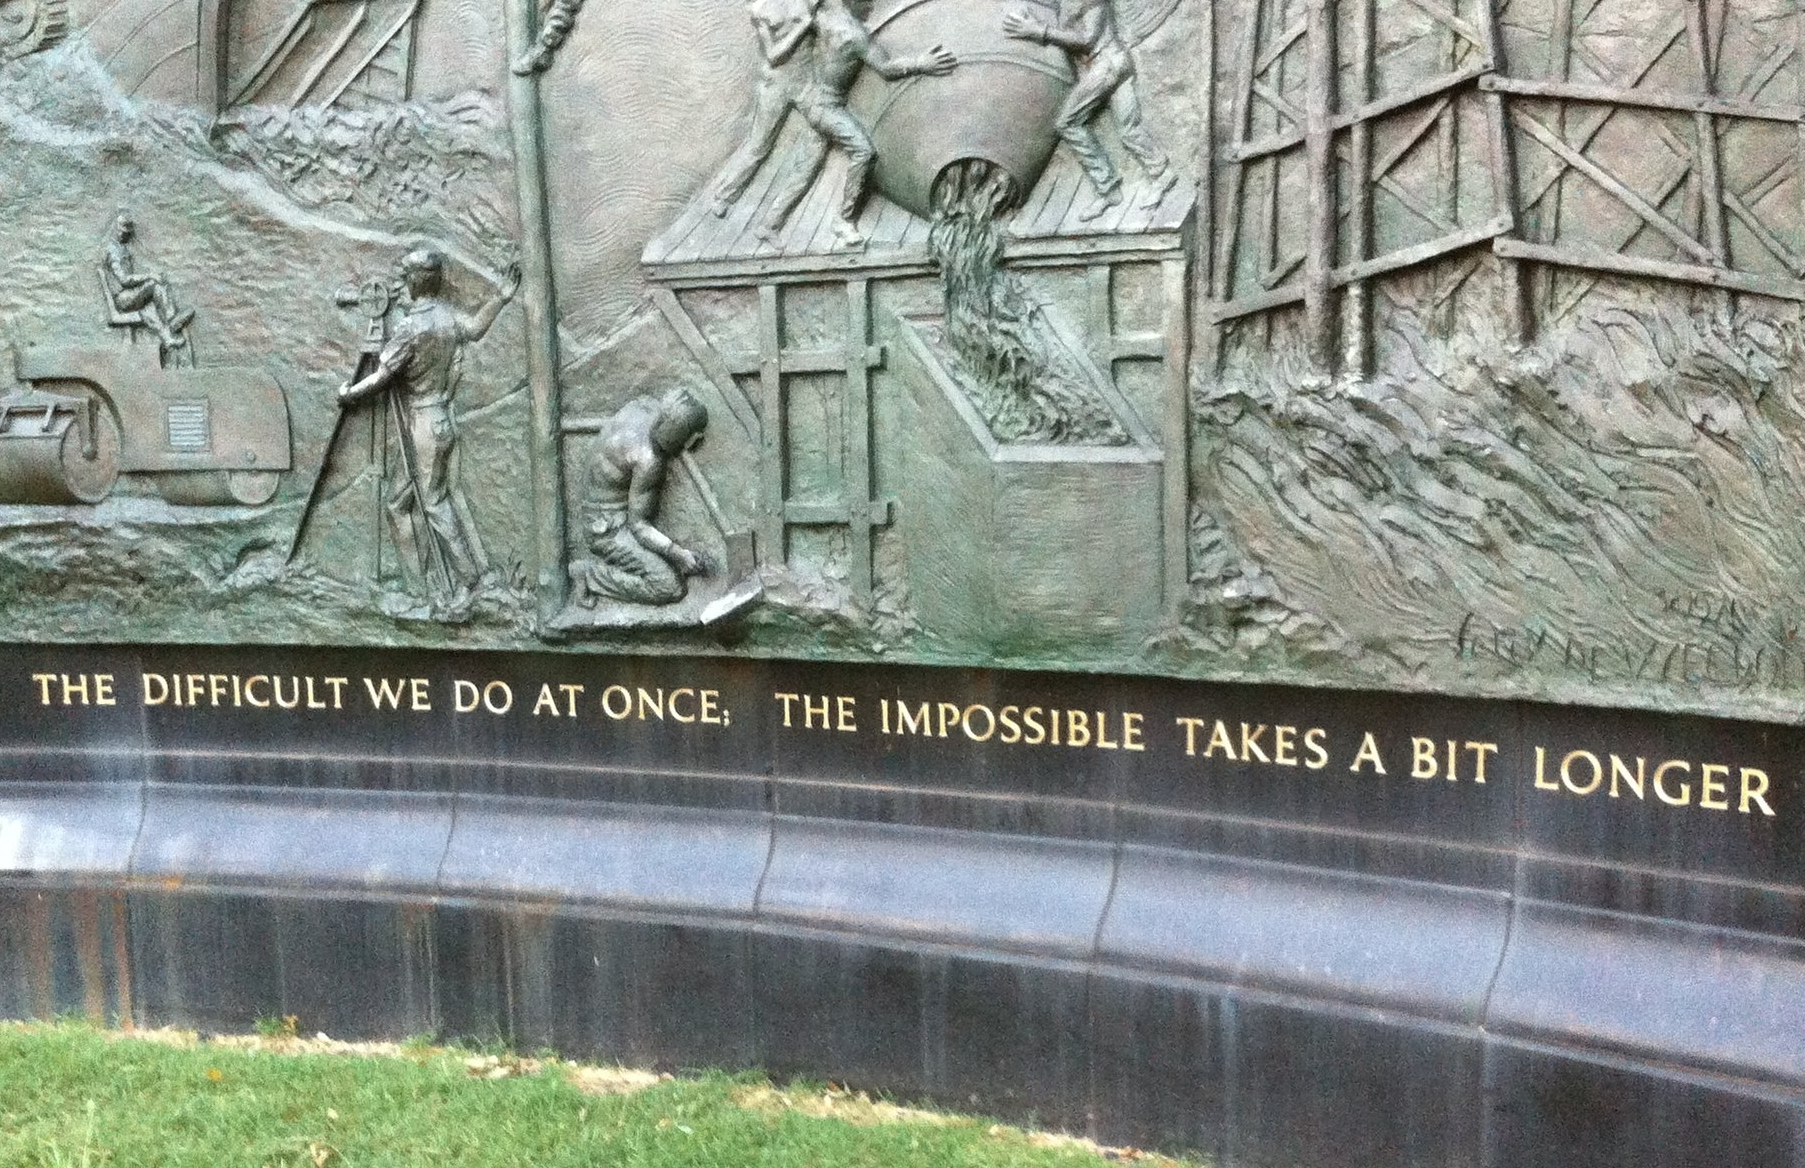 """The impossible takes a bit longer."" Washington D.C., USA, 2016."